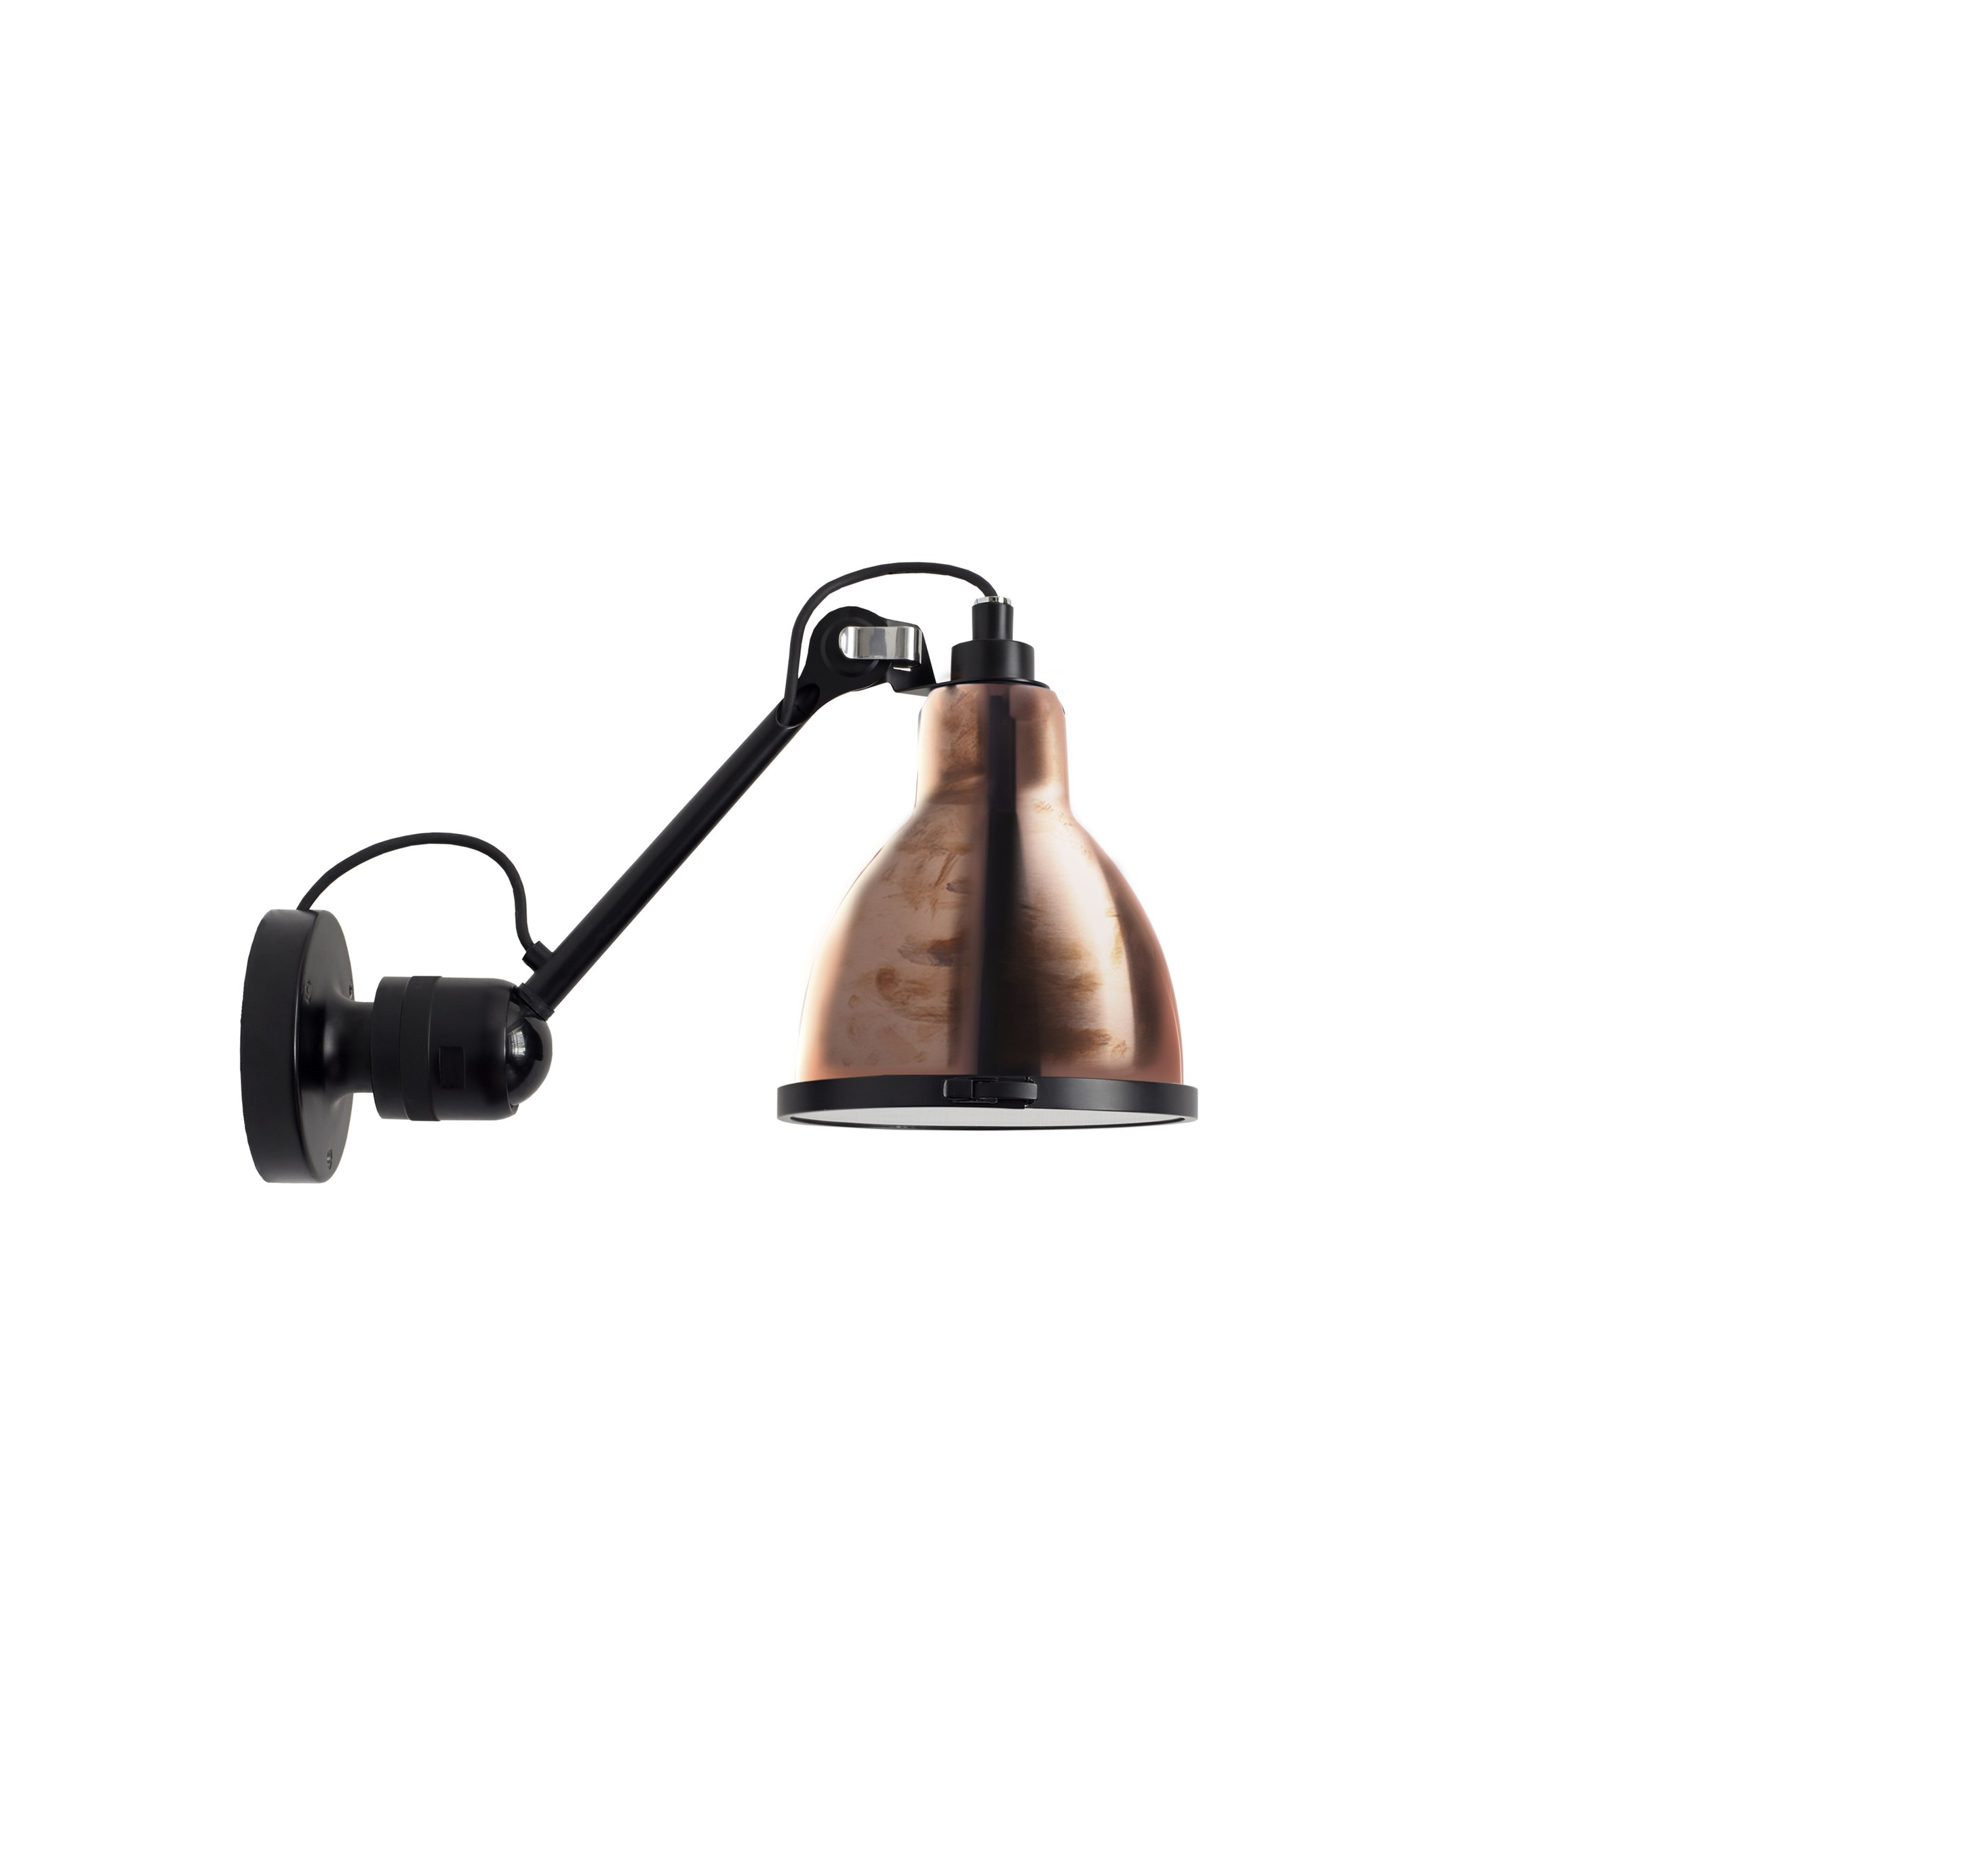 adjustable steel wall lamp 304 xl in and out by dcw ditions design bernard albin gras. Black Bedroom Furniture Sets. Home Design Ideas